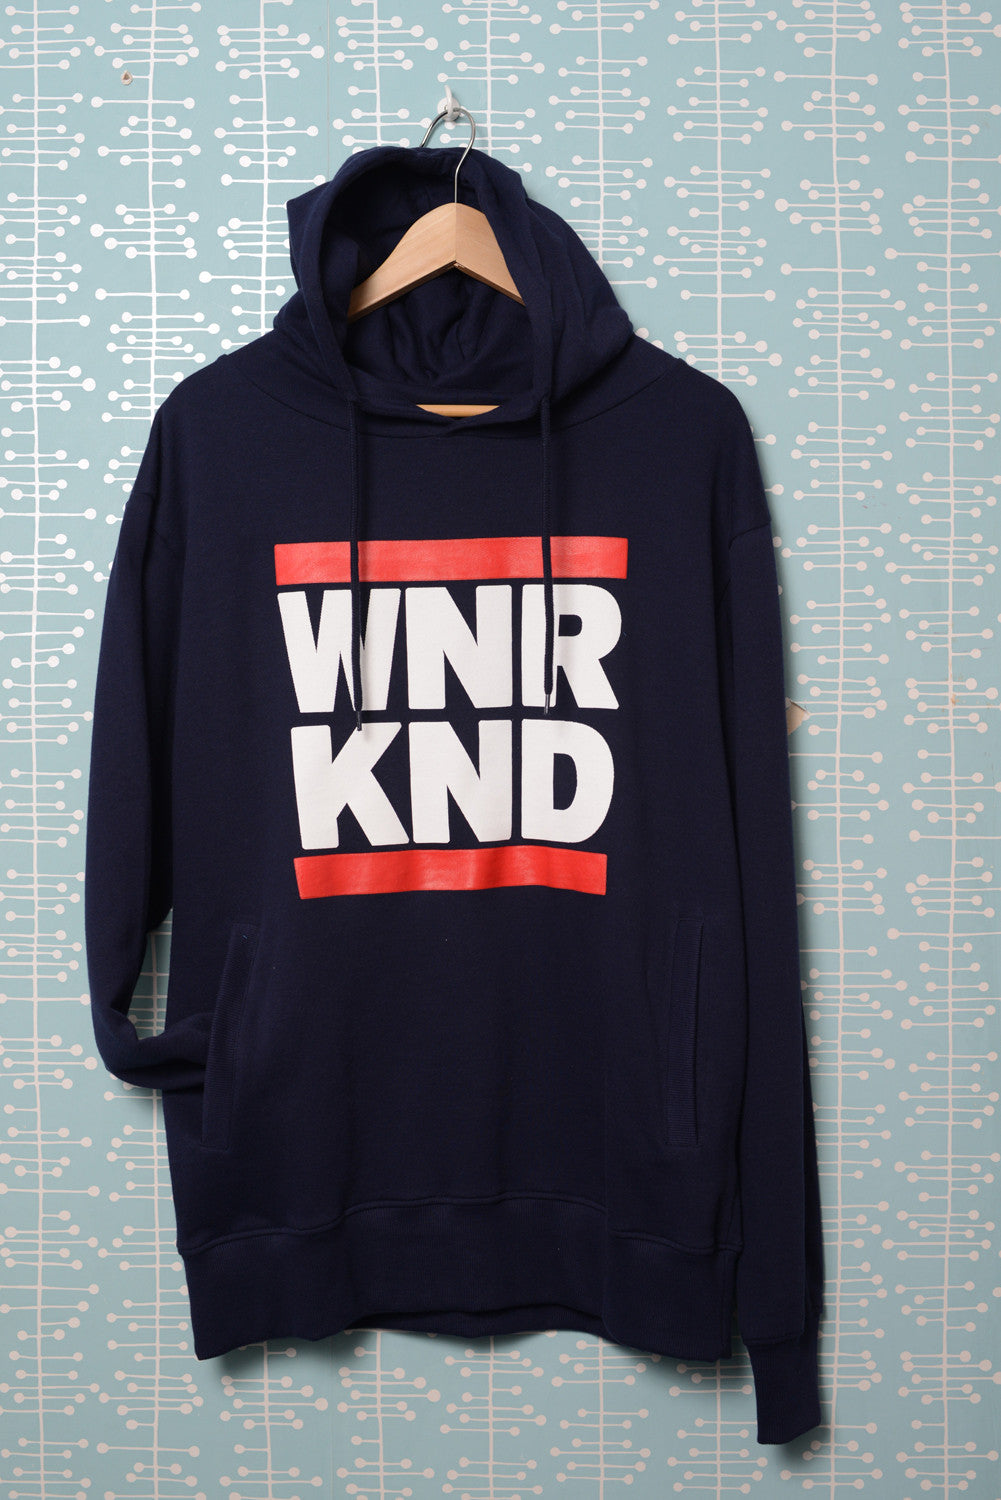 WNRKND Fashion Pullover Hoody black